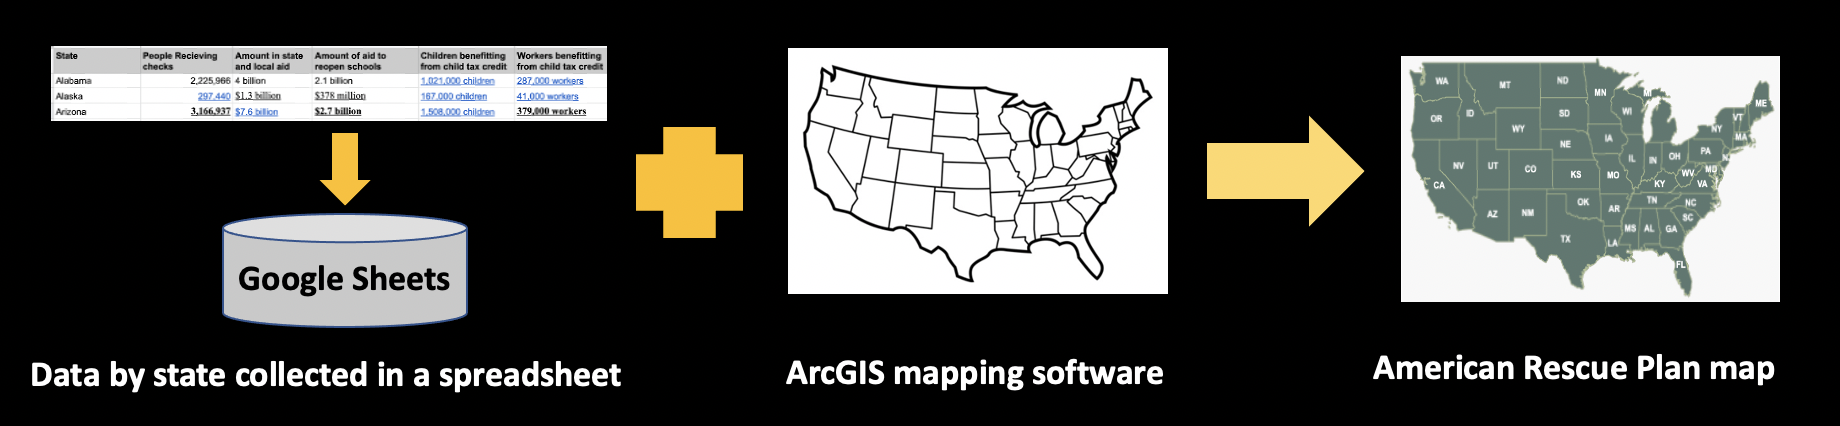 ArcGIS makes it easy to map data so that it is easier to understand